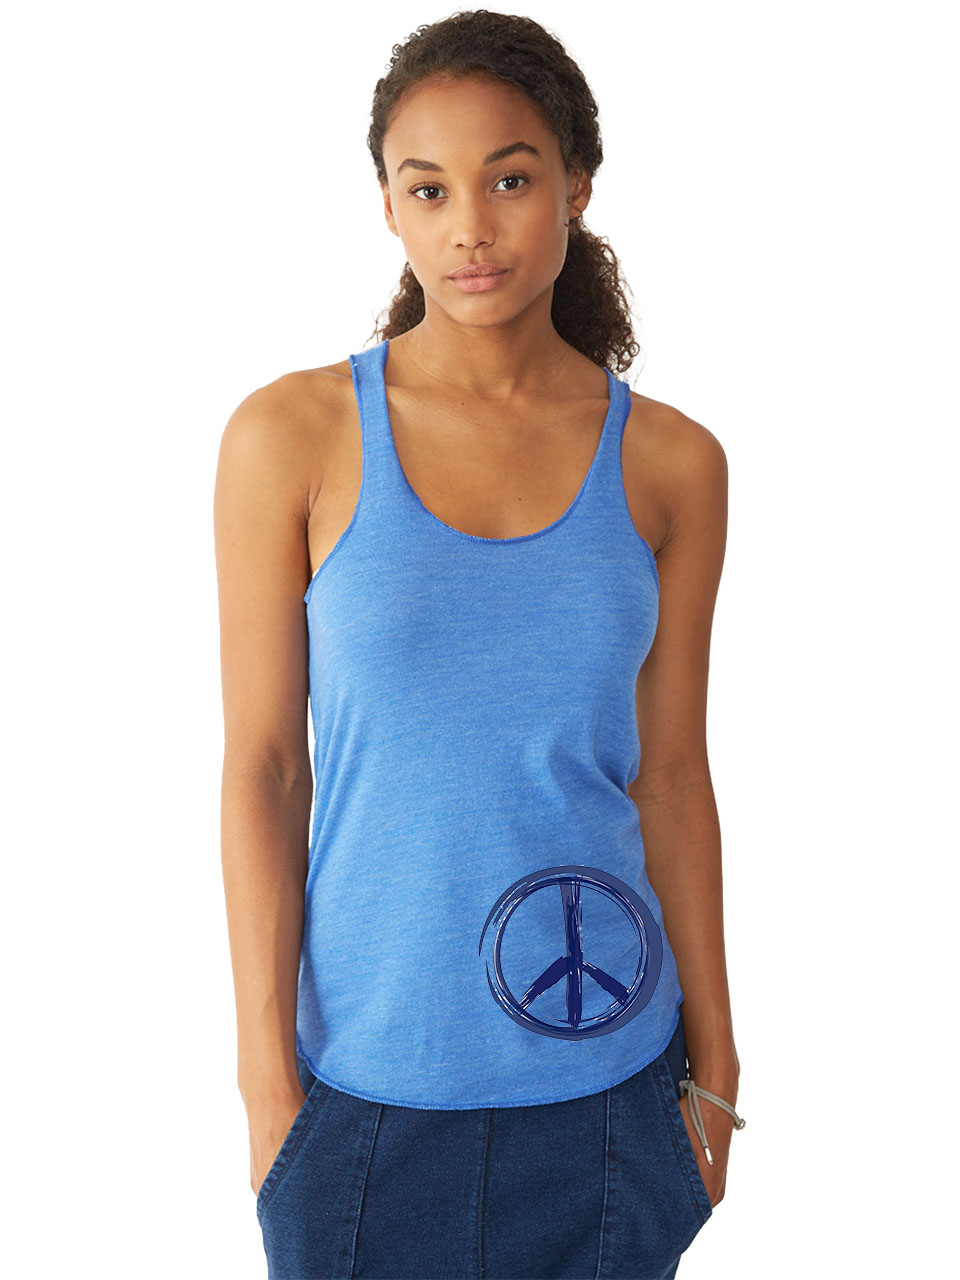 INSPIRE PEACE - EcoJersey Tank